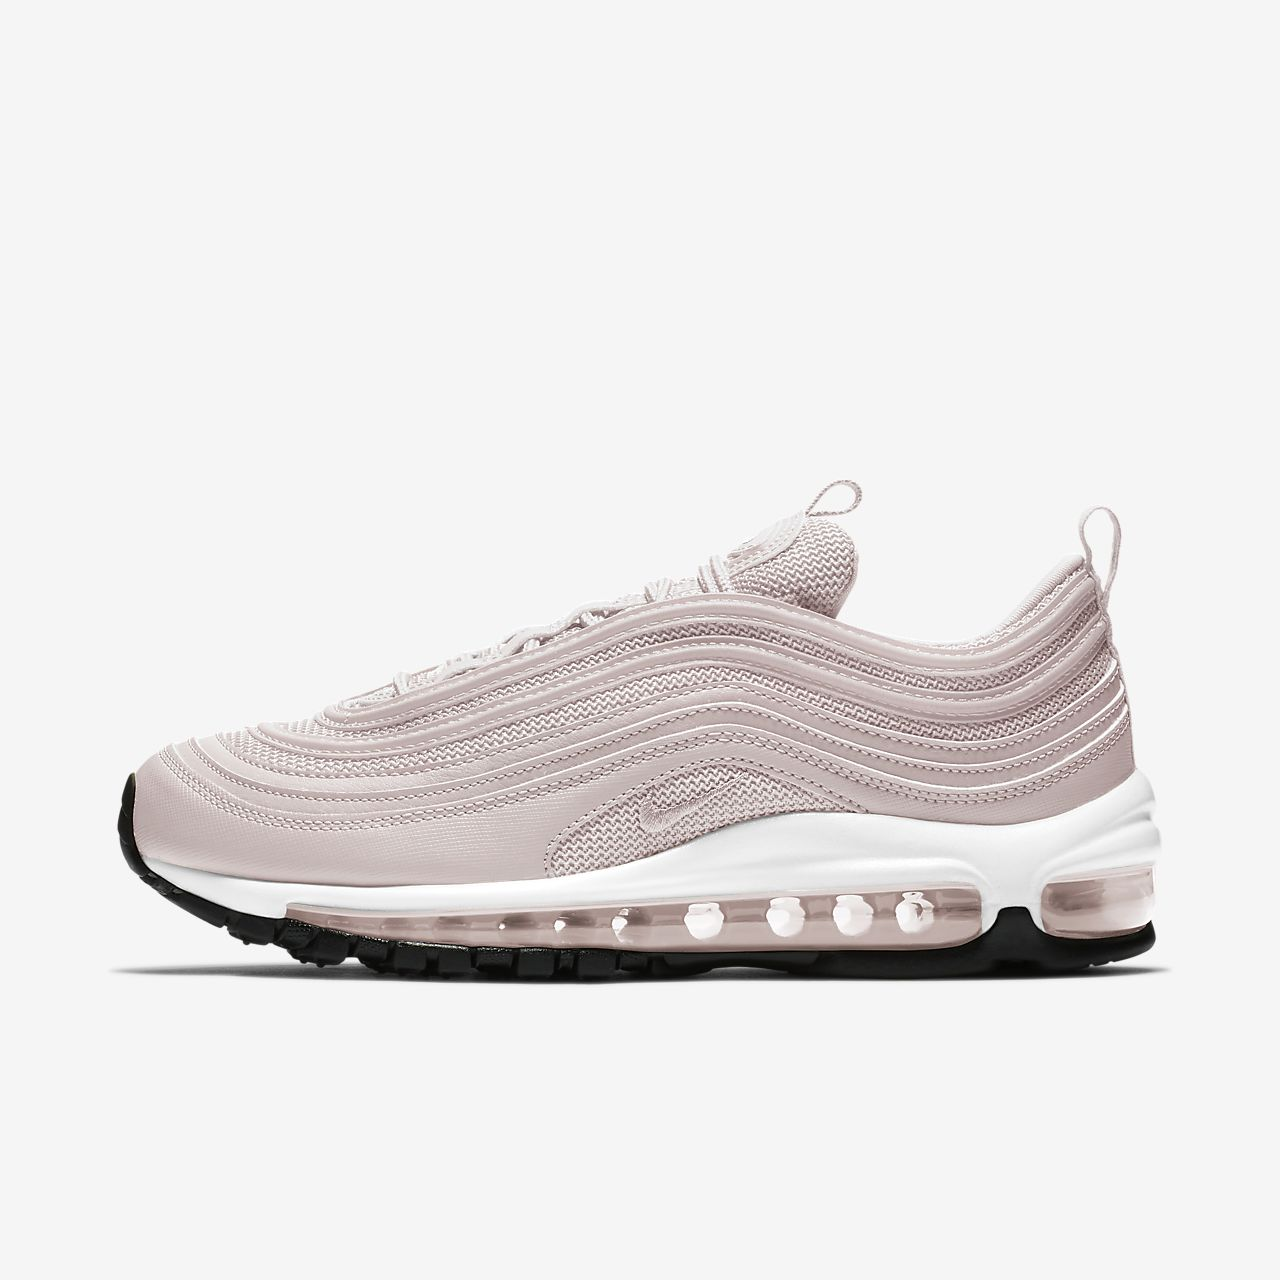 size 40 60bdb 4d729 Women s Shoe. Nike Air Max 97